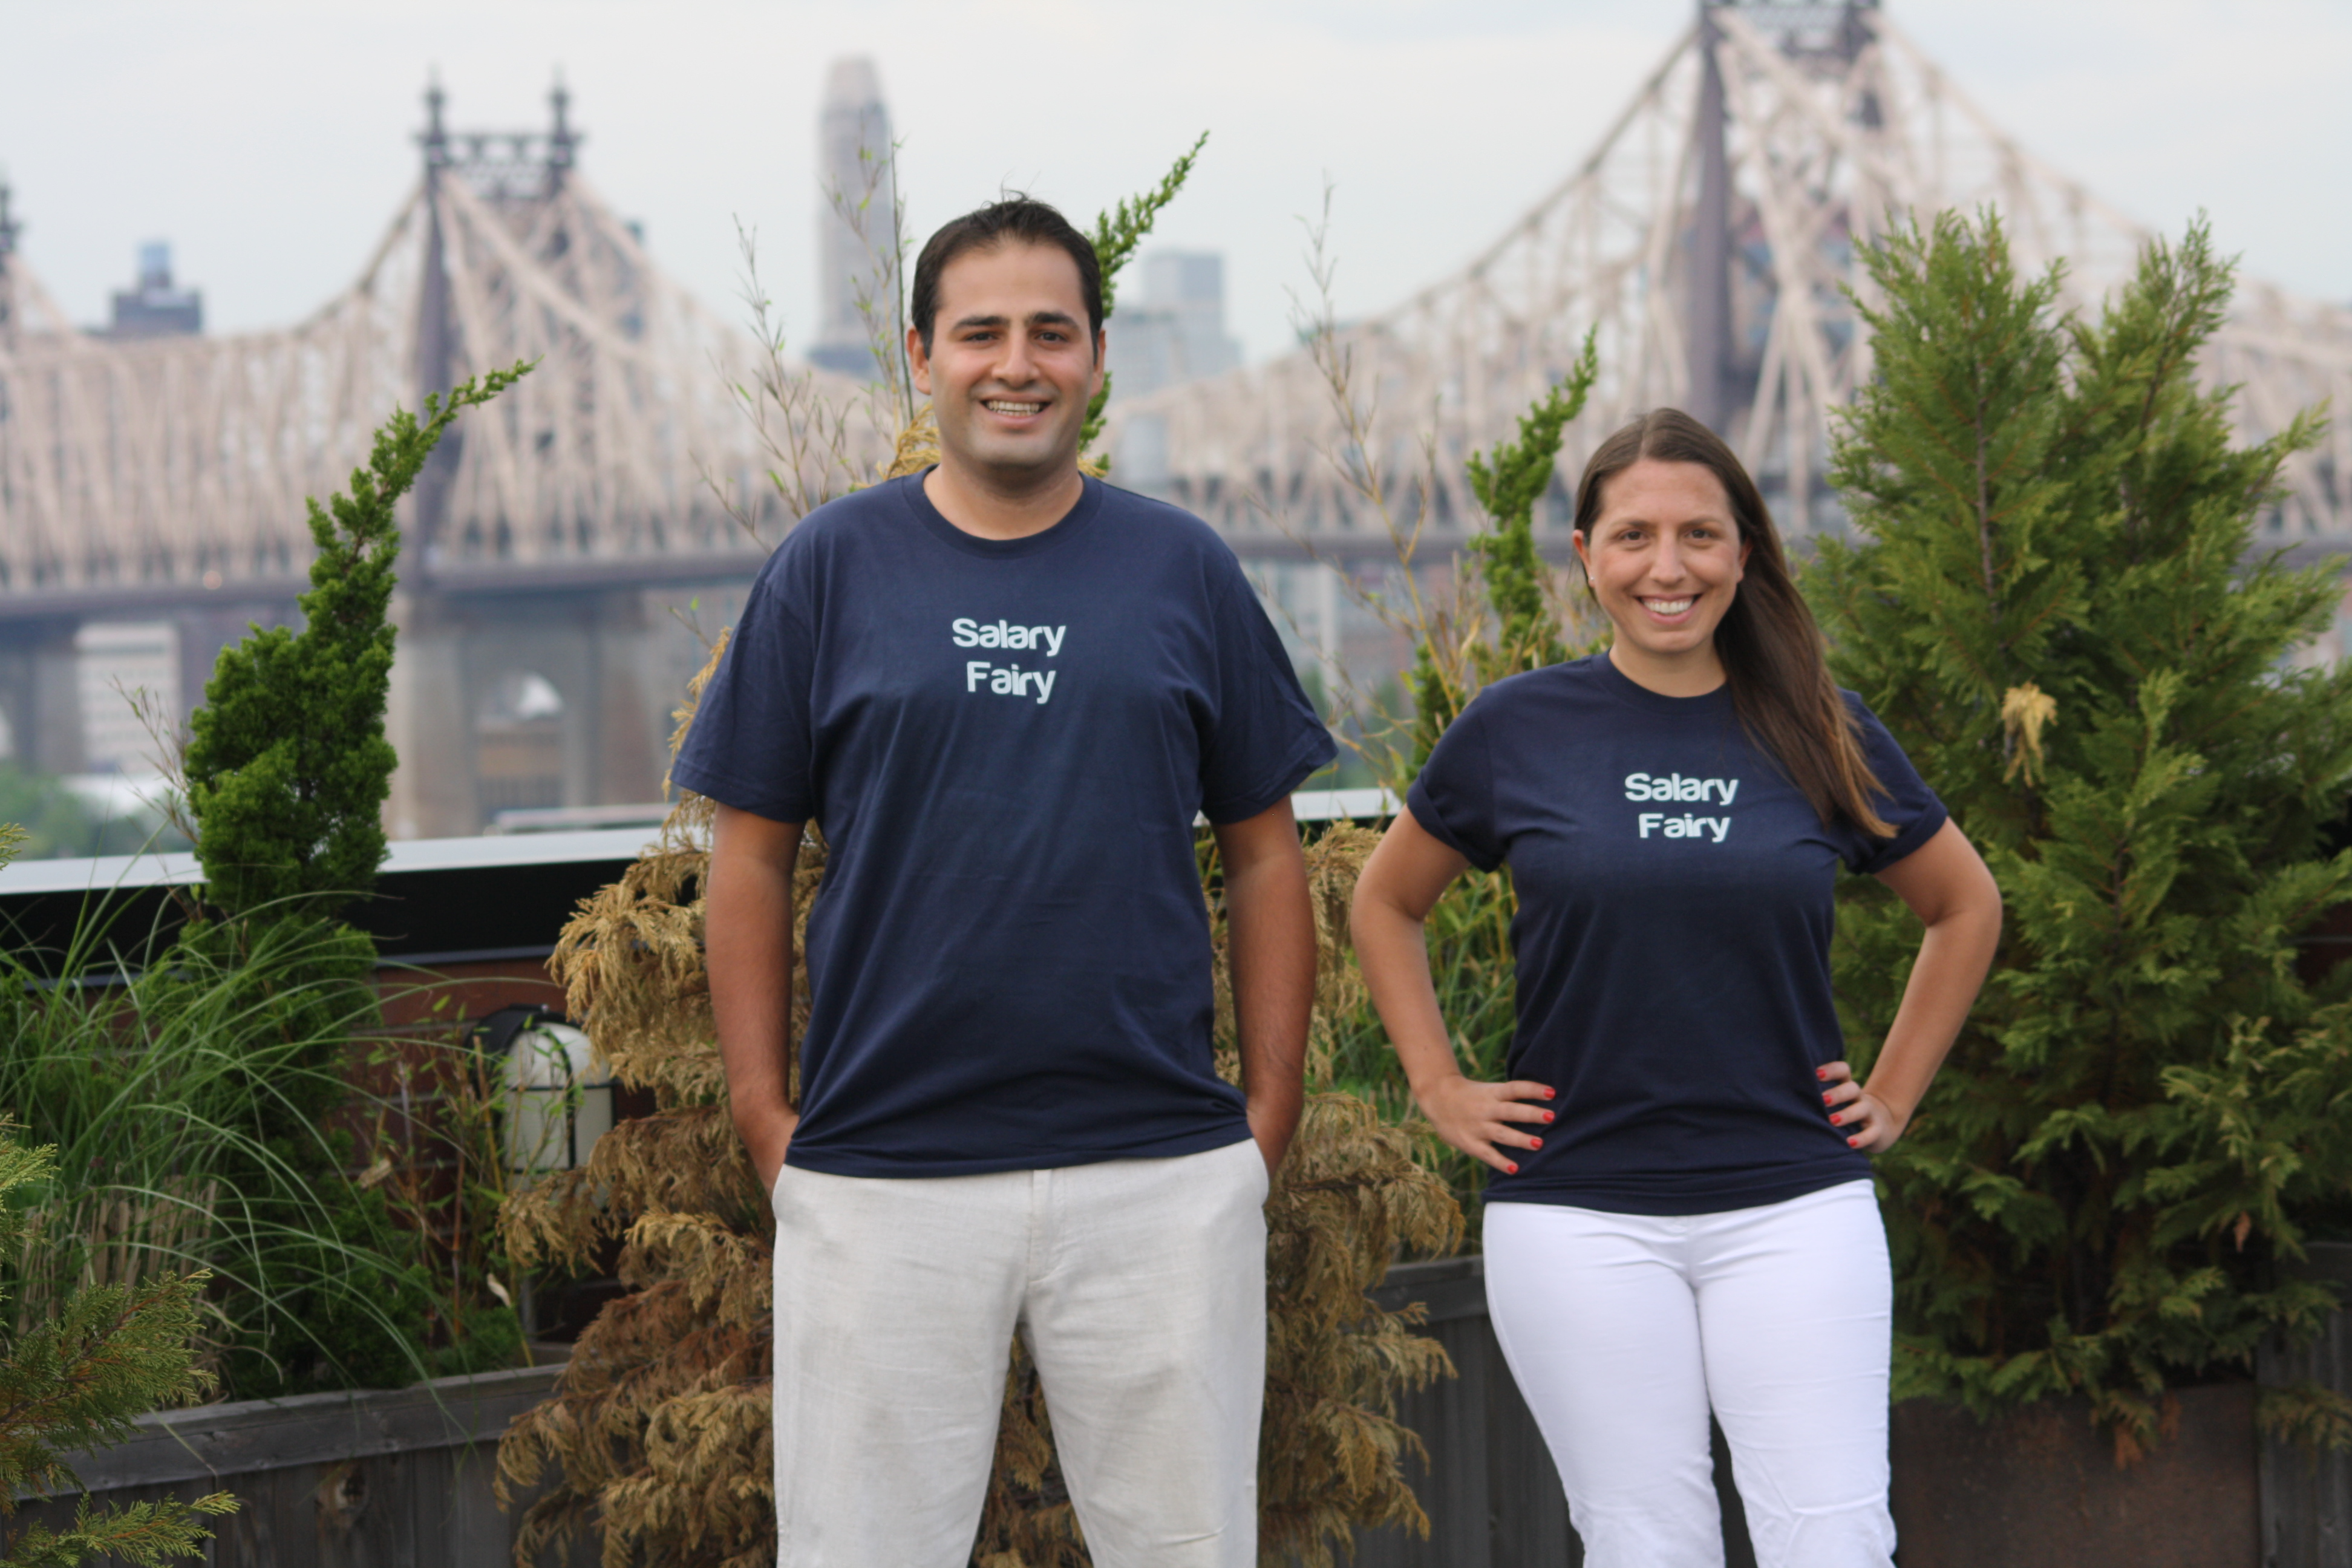 Cagri (l.) and Gozde Aksay, husband and wife founders of LIC-based Salaryfairy.com. Photo Courtesy of Cagri Aksay.